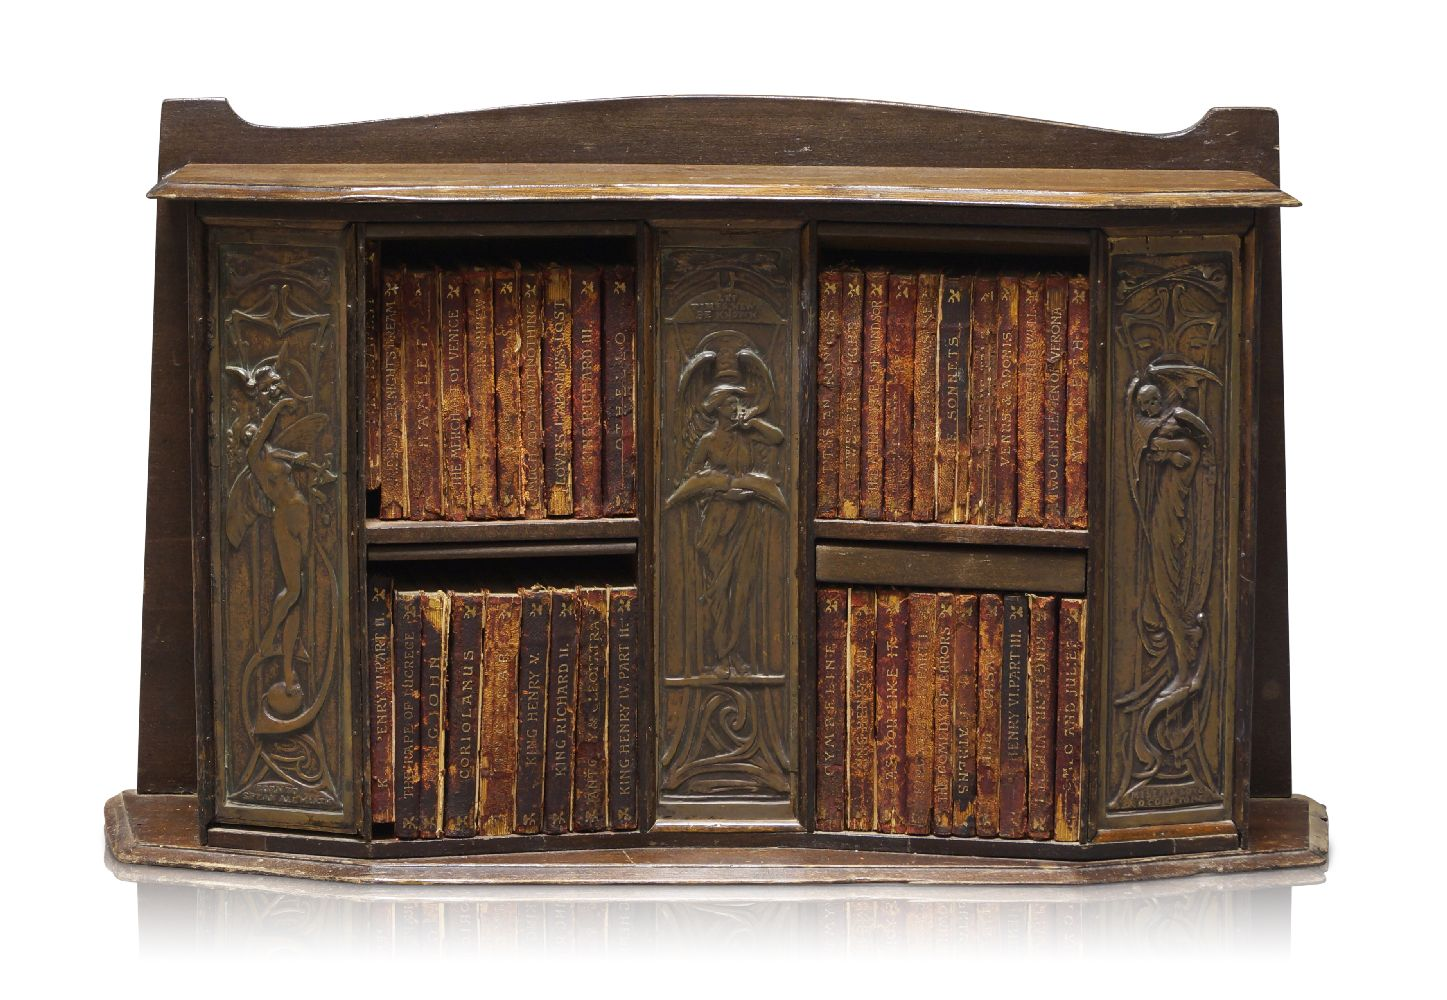 Lot 35 - A small Arts & Crafts stained pine Book case with Forty works by William Shakespeare c.1897 The